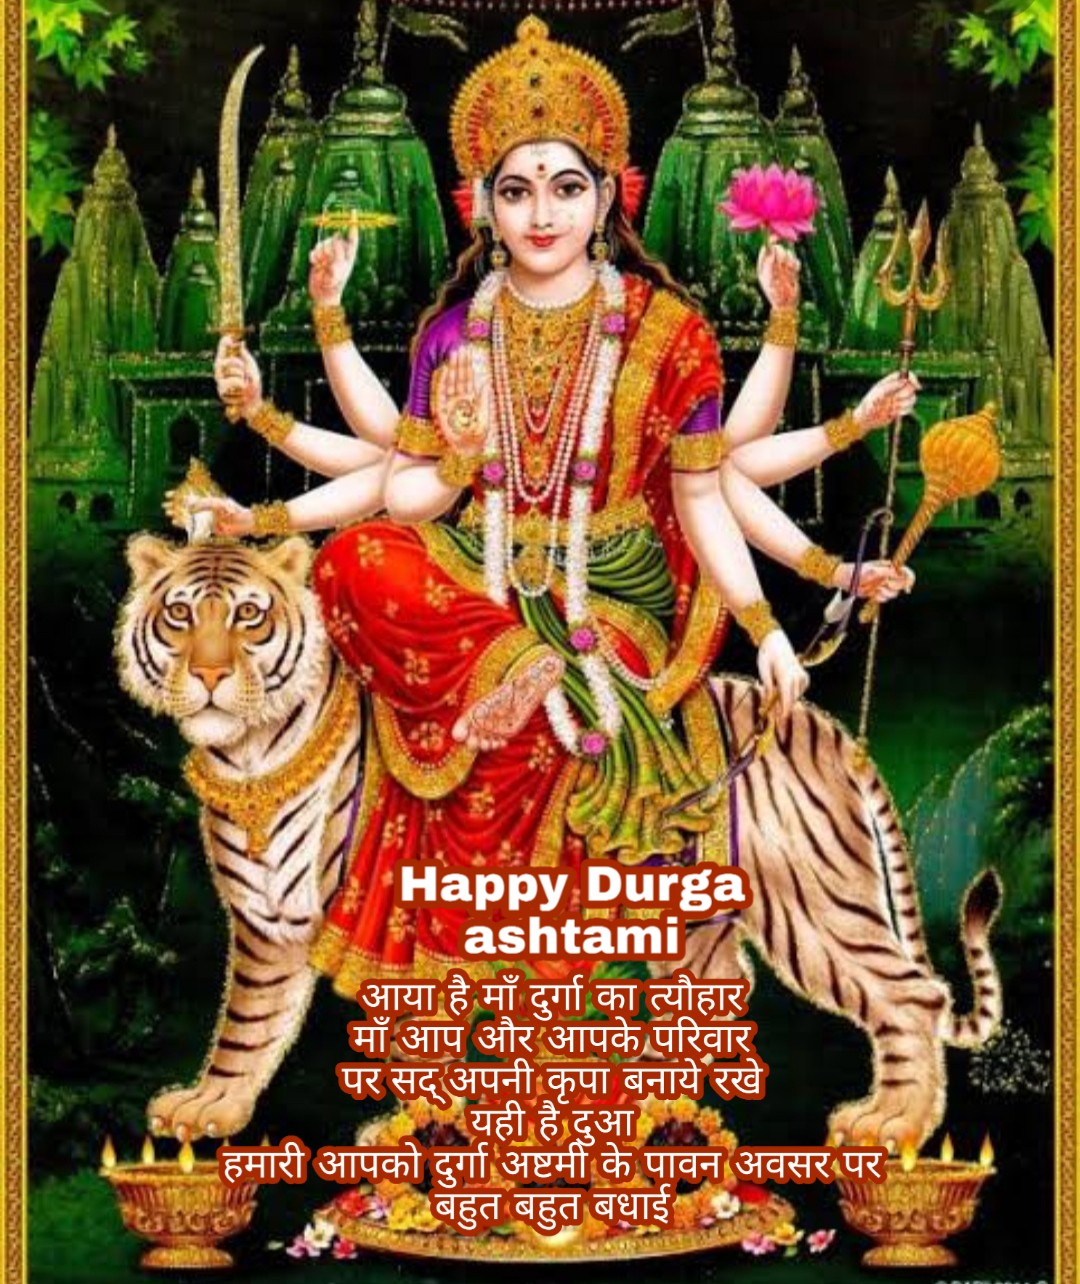 Photo of Durga ashtami status whatsapp status 2020